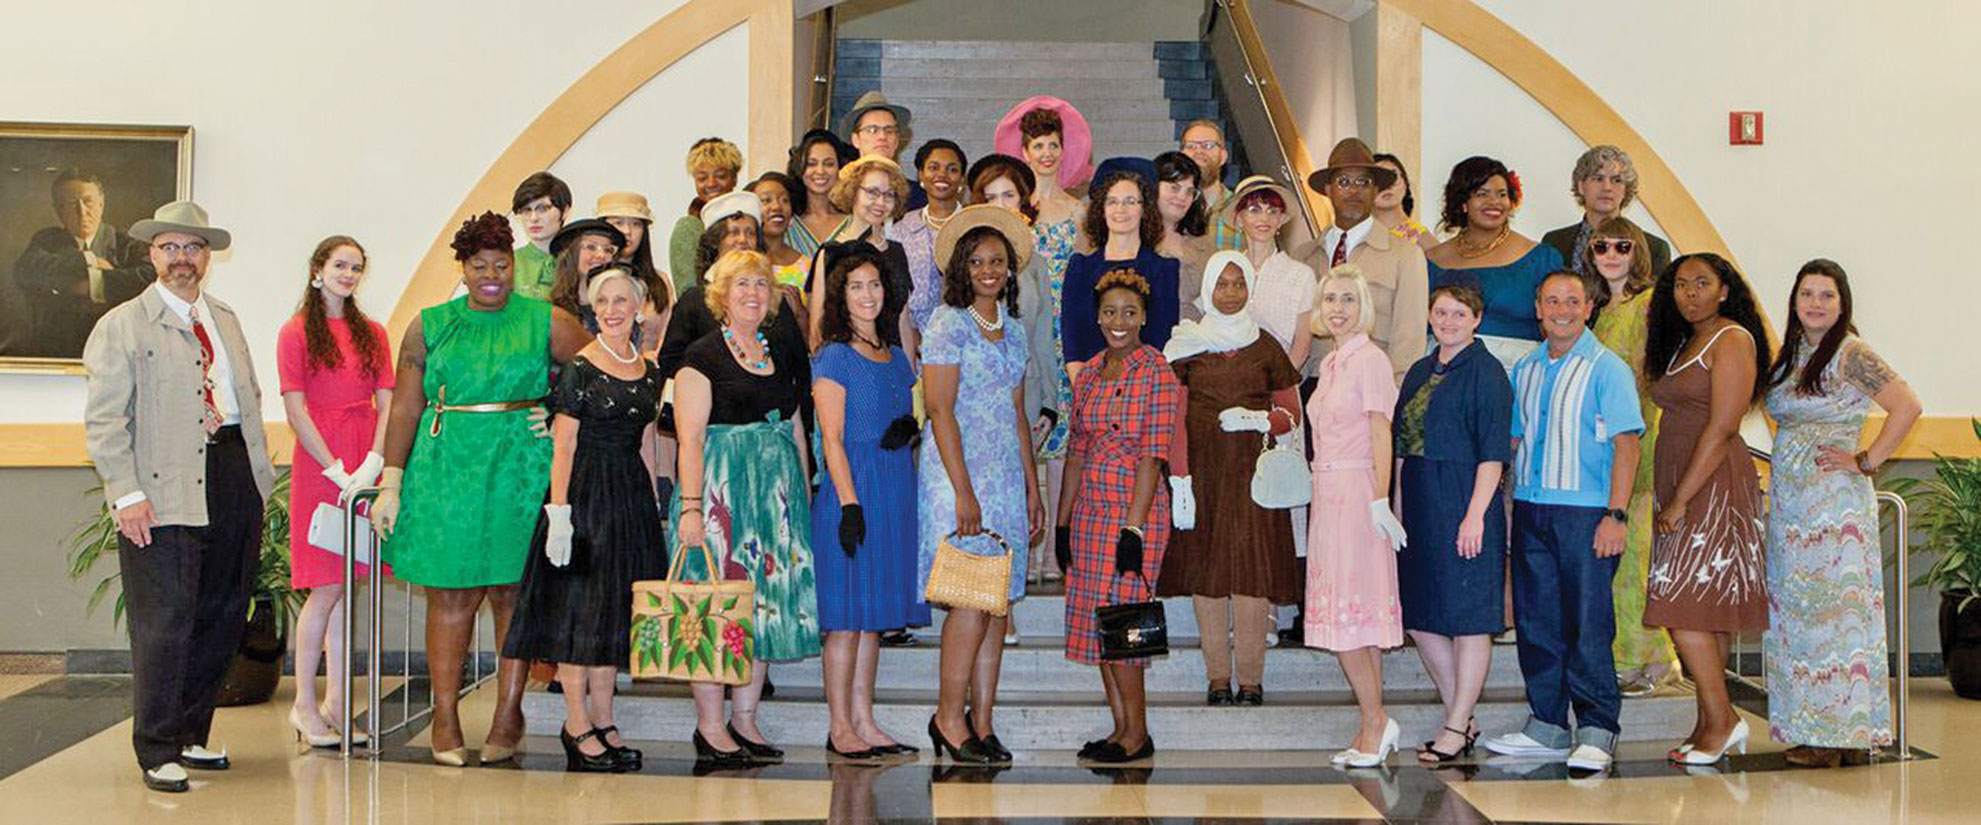 Fashion model participants at the Greensboro Central Library.